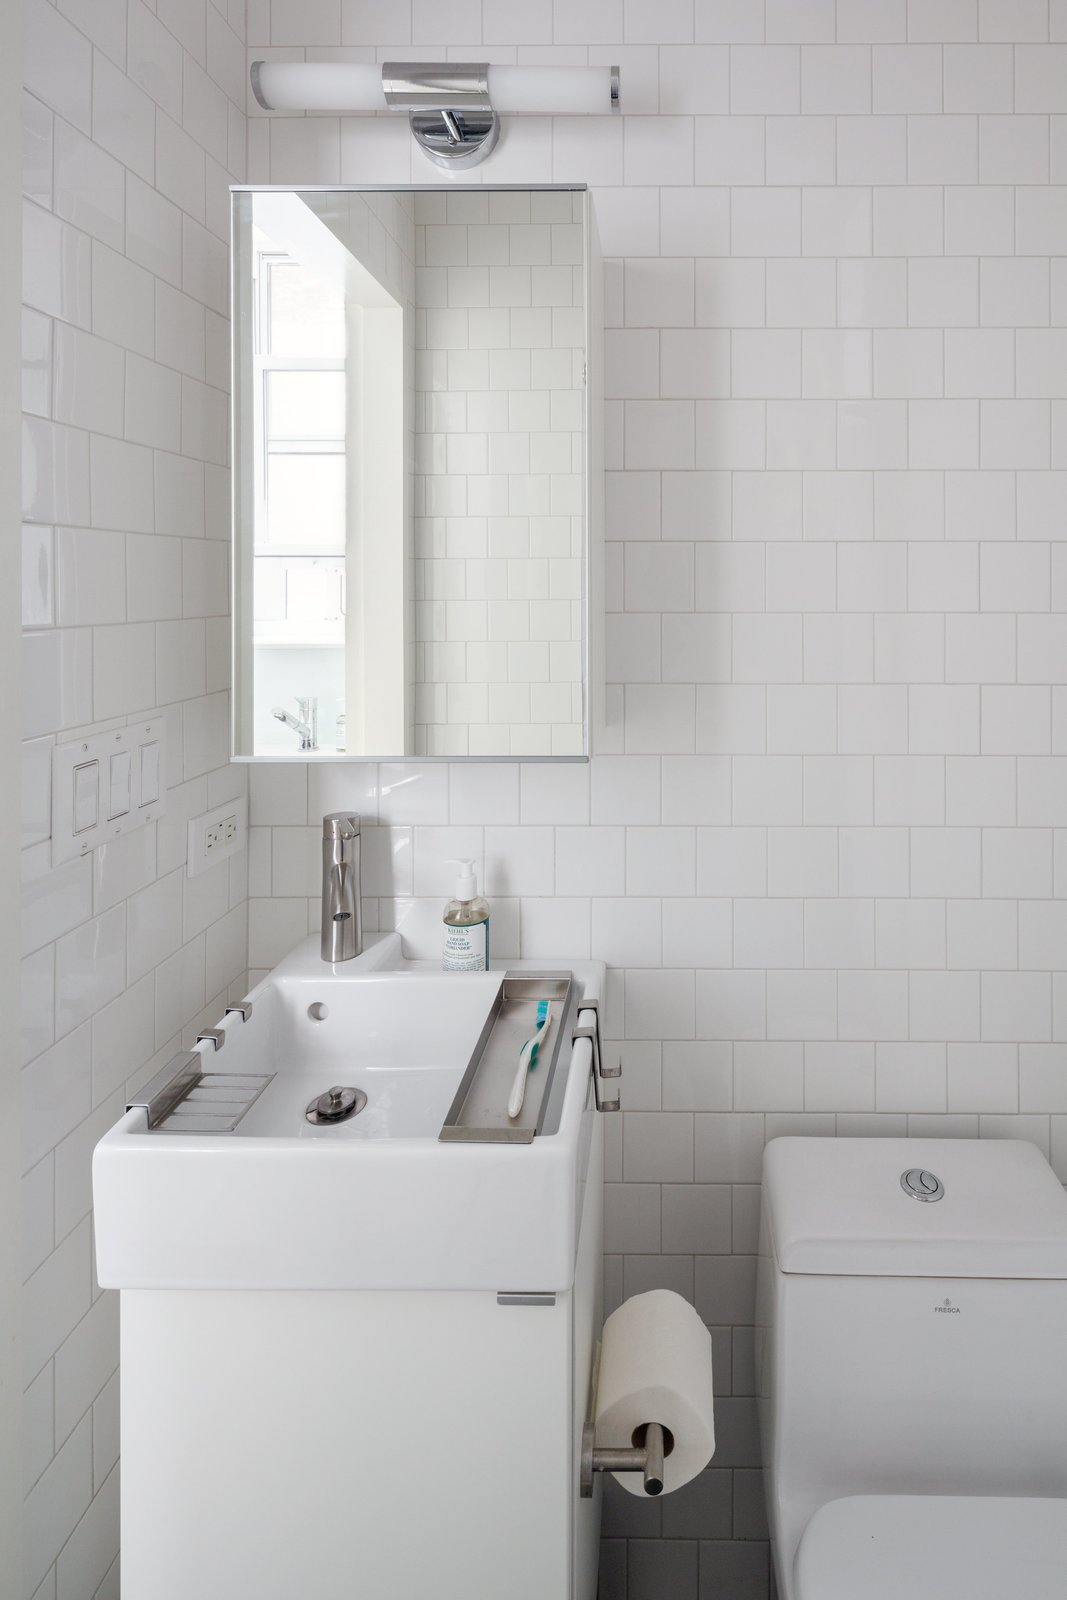 In the bathroom, a compact Lillången sink from IKEA offers a narrow profile for the tight space, yet is deep enough to accommodate hanging storage trays for toiletrie. The toilet is by Fresca and the subway tile is from Mosa.  Photo 9 of 10 in This 390-Square-Foot Renovation Is Compact Yet Comfortable in Greenwich Village